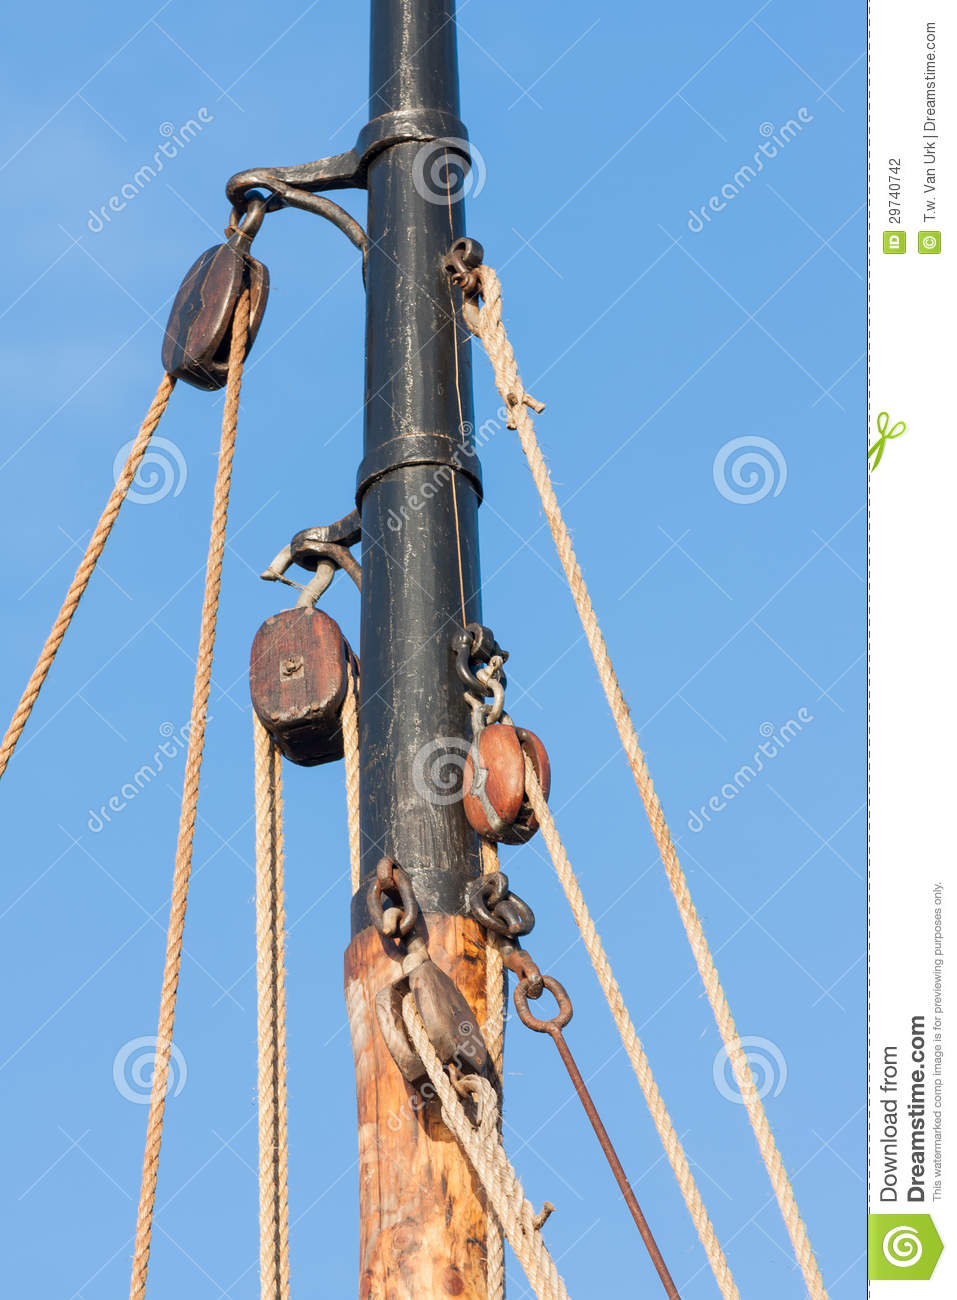 Mast And Rigging From Old Wooden Sailing Ship Stock Photography - Image: 29740742